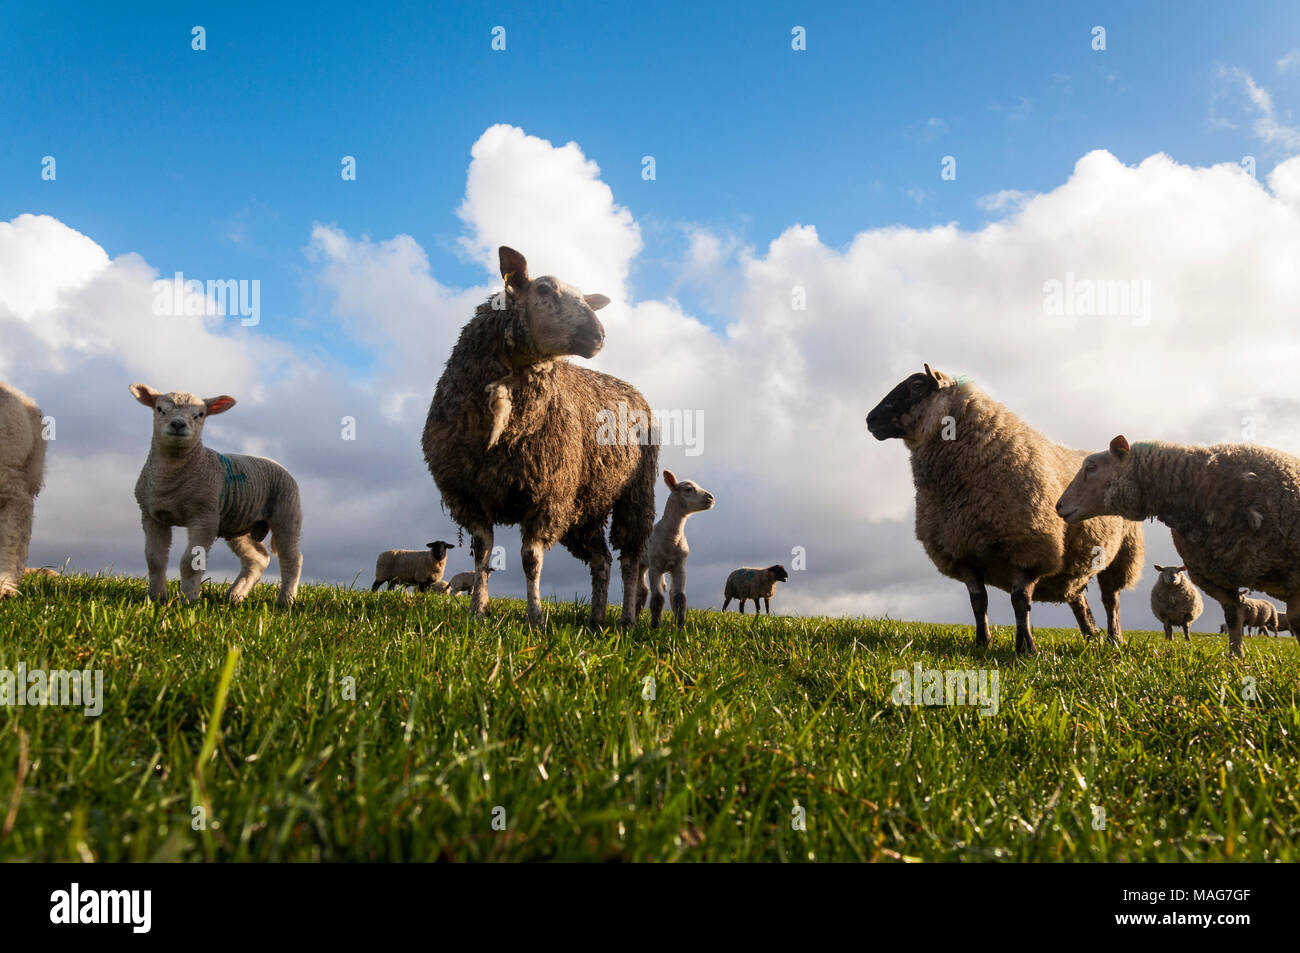 Ewe sheep and lambs in a Donegal field - Stock Image